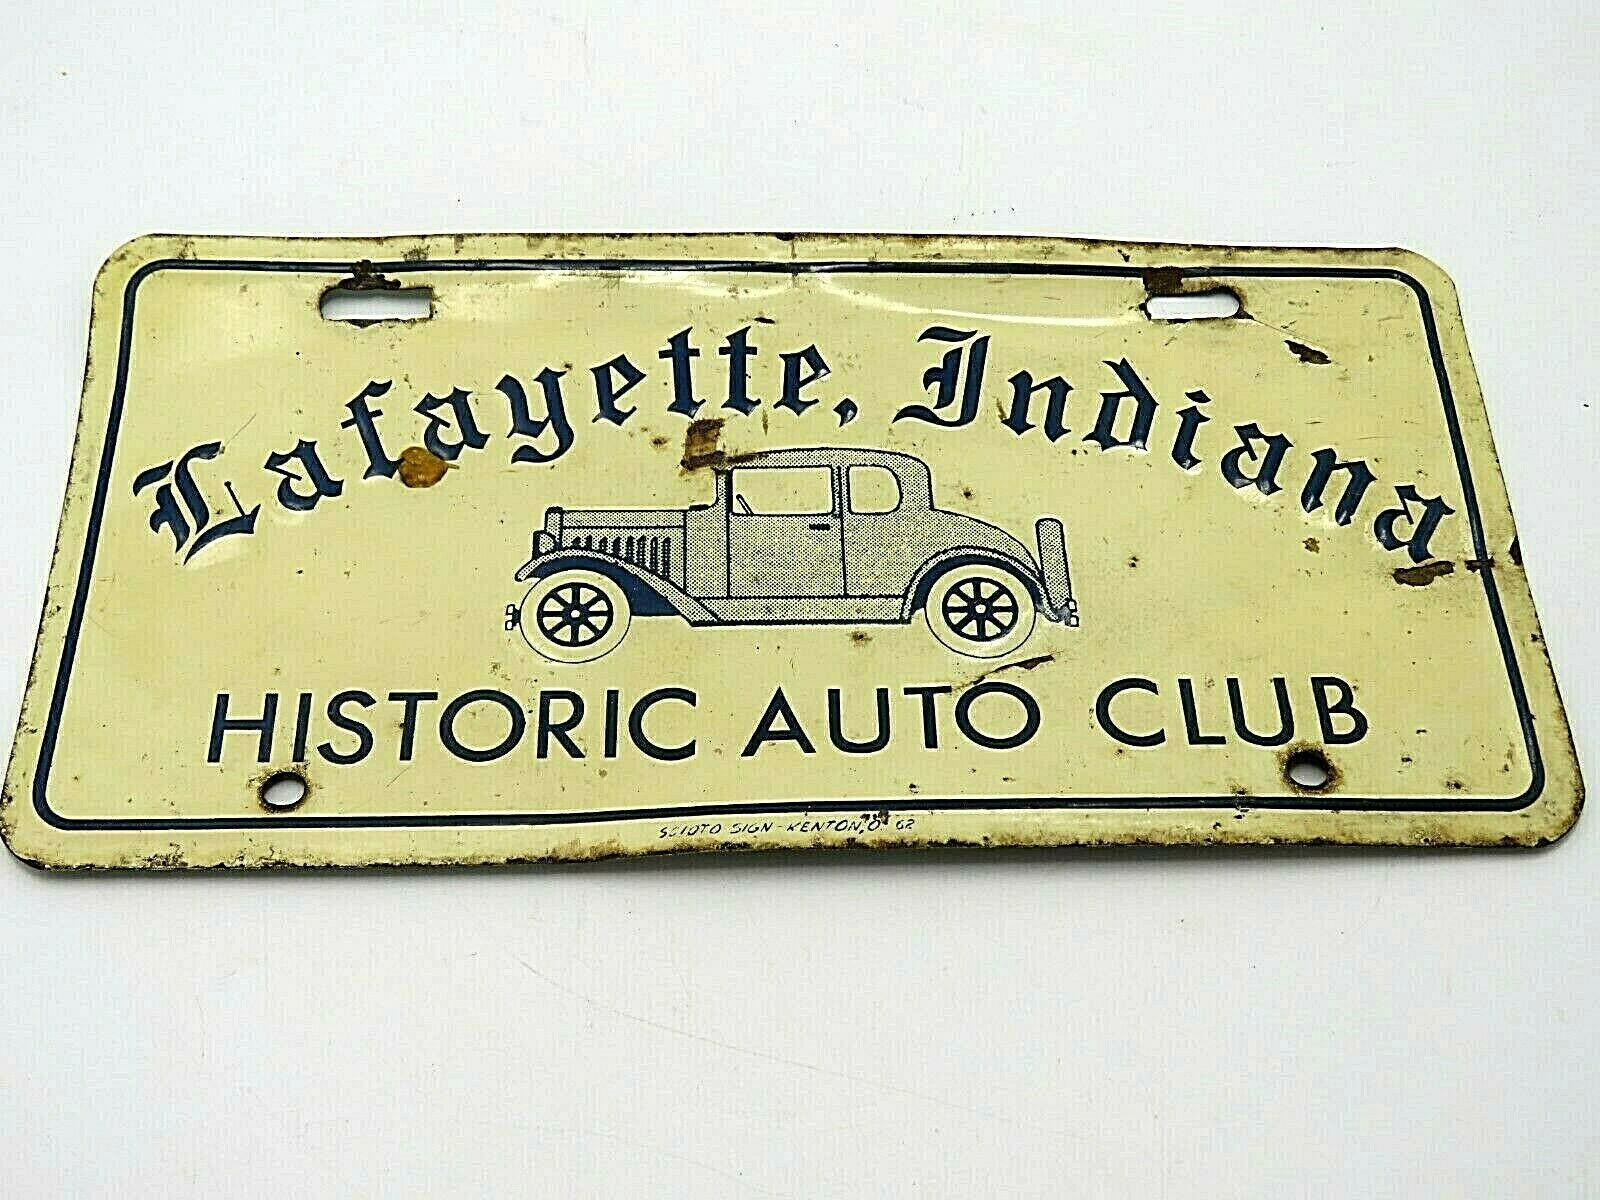 Vintage Historic Auto Club Lafayette Indiana Metal License Plate image 1